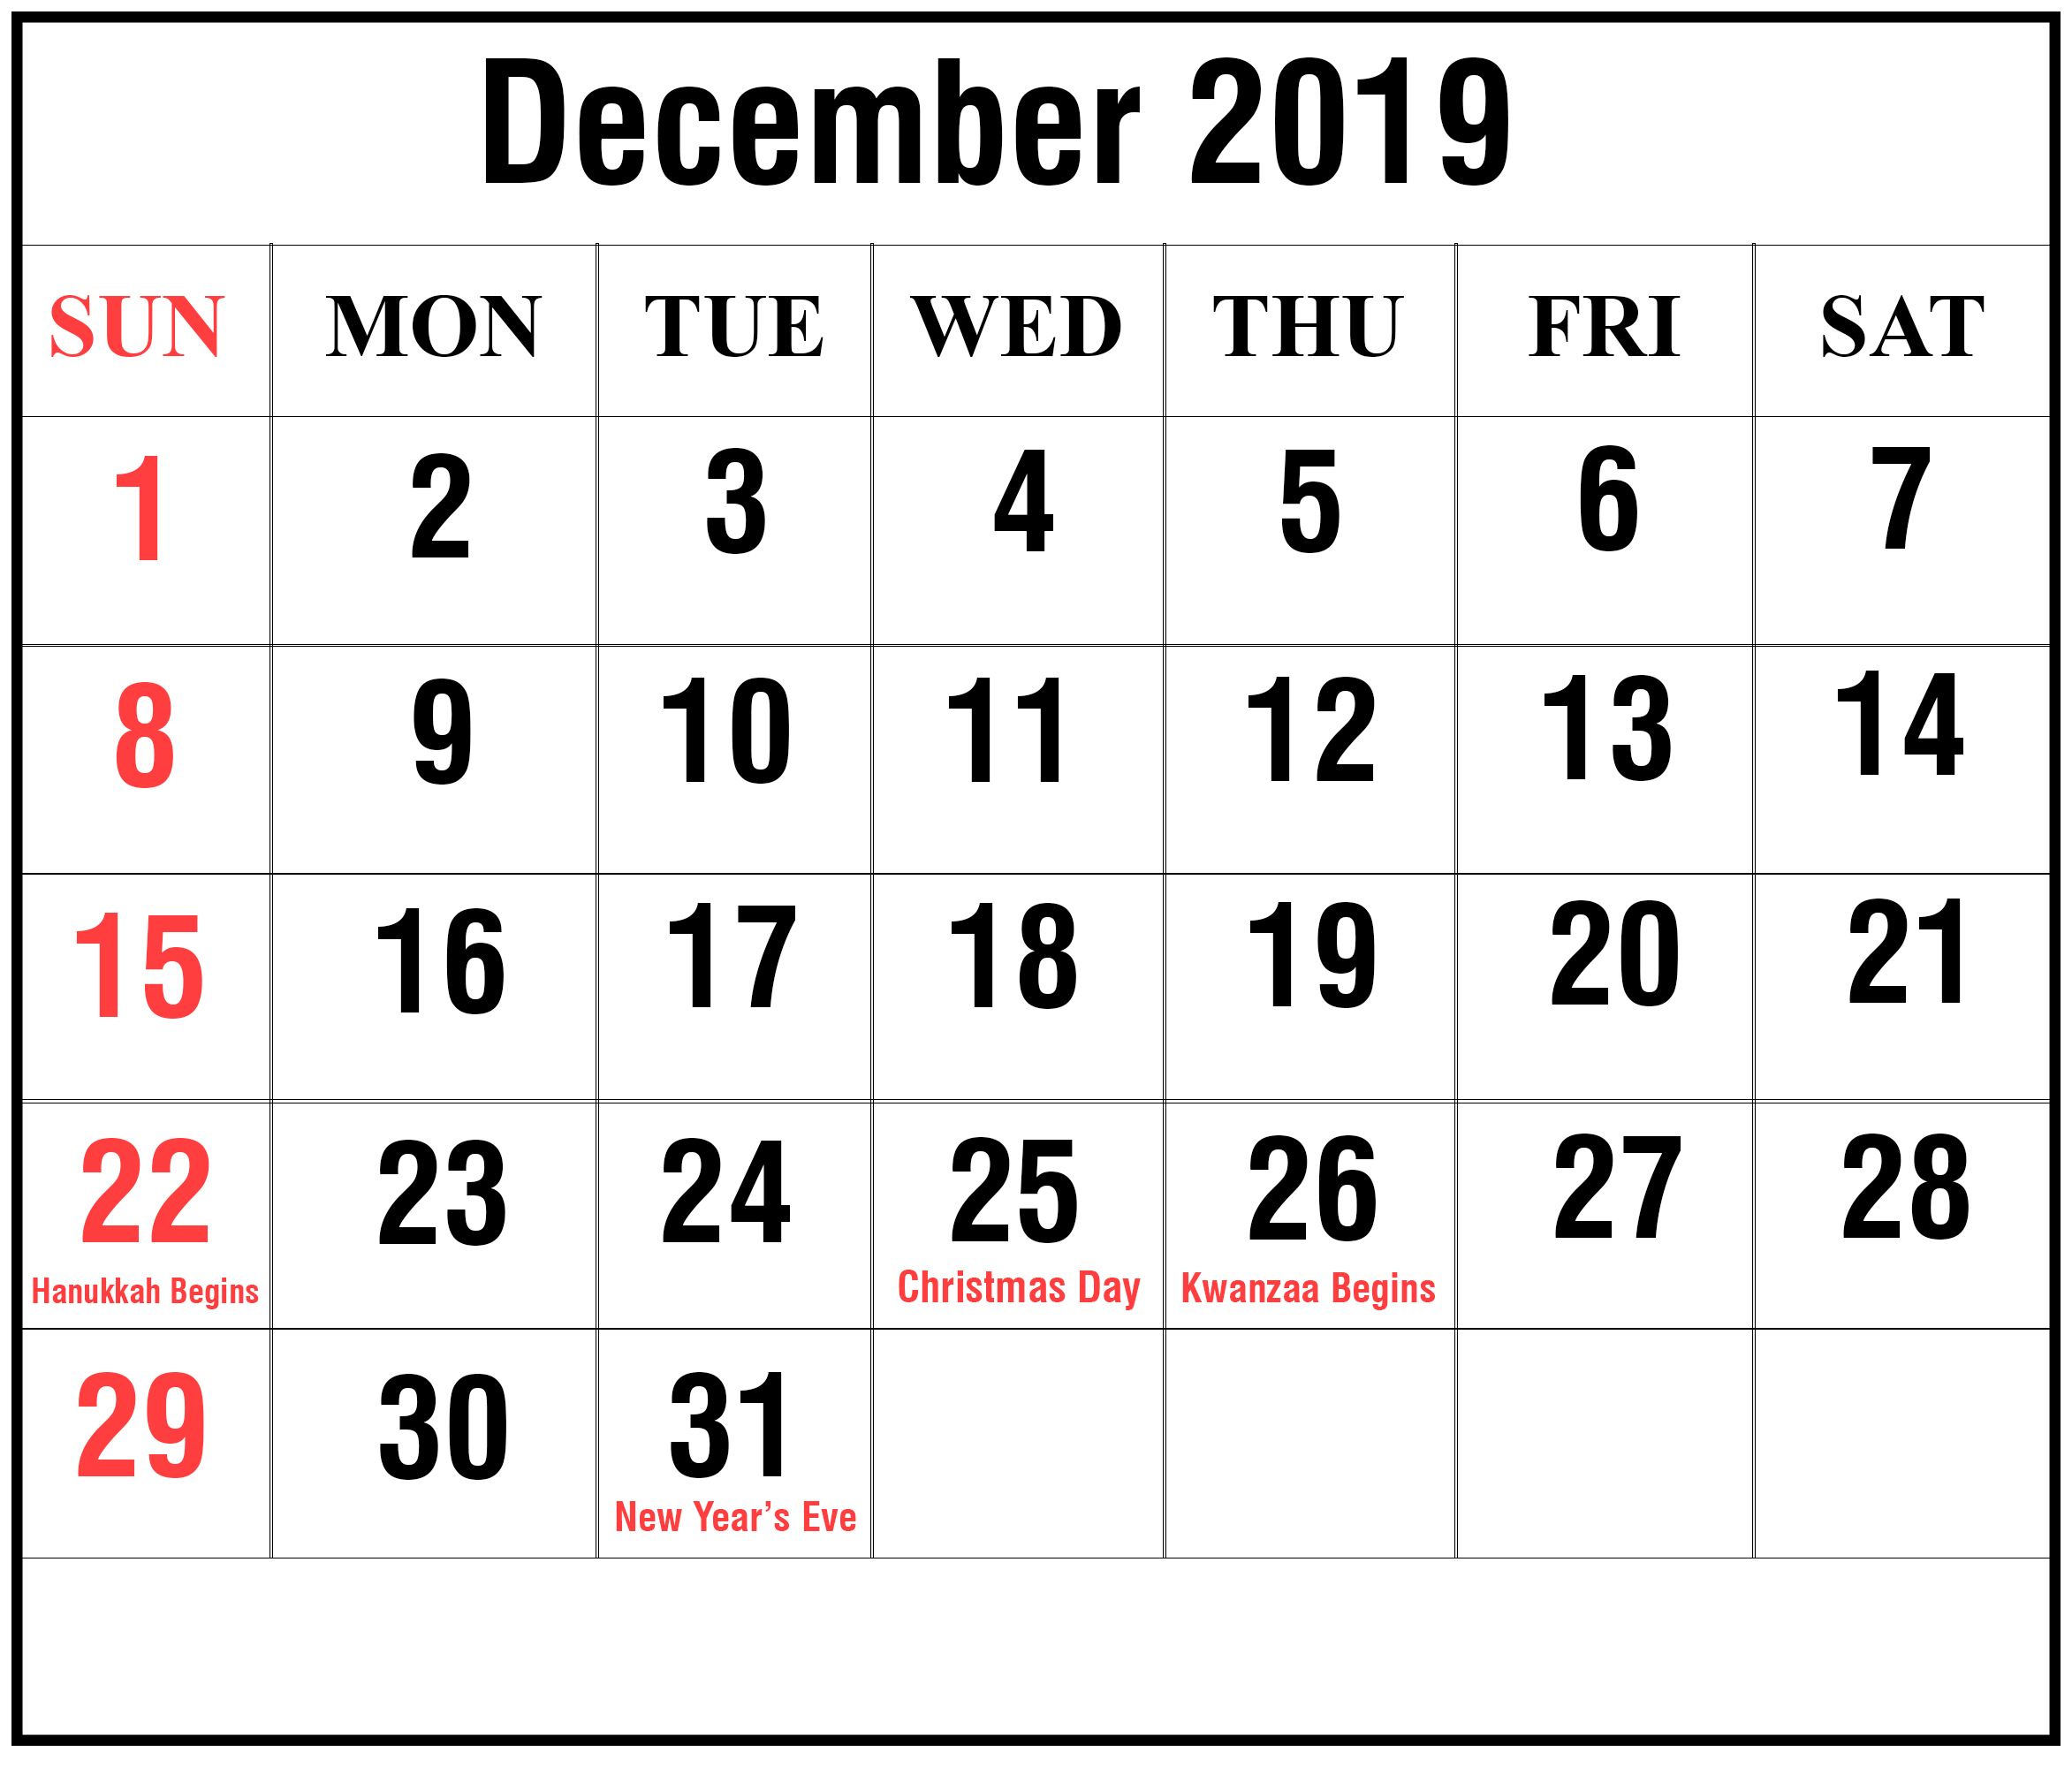 December 2019 Calendar with Holidays US Free printable